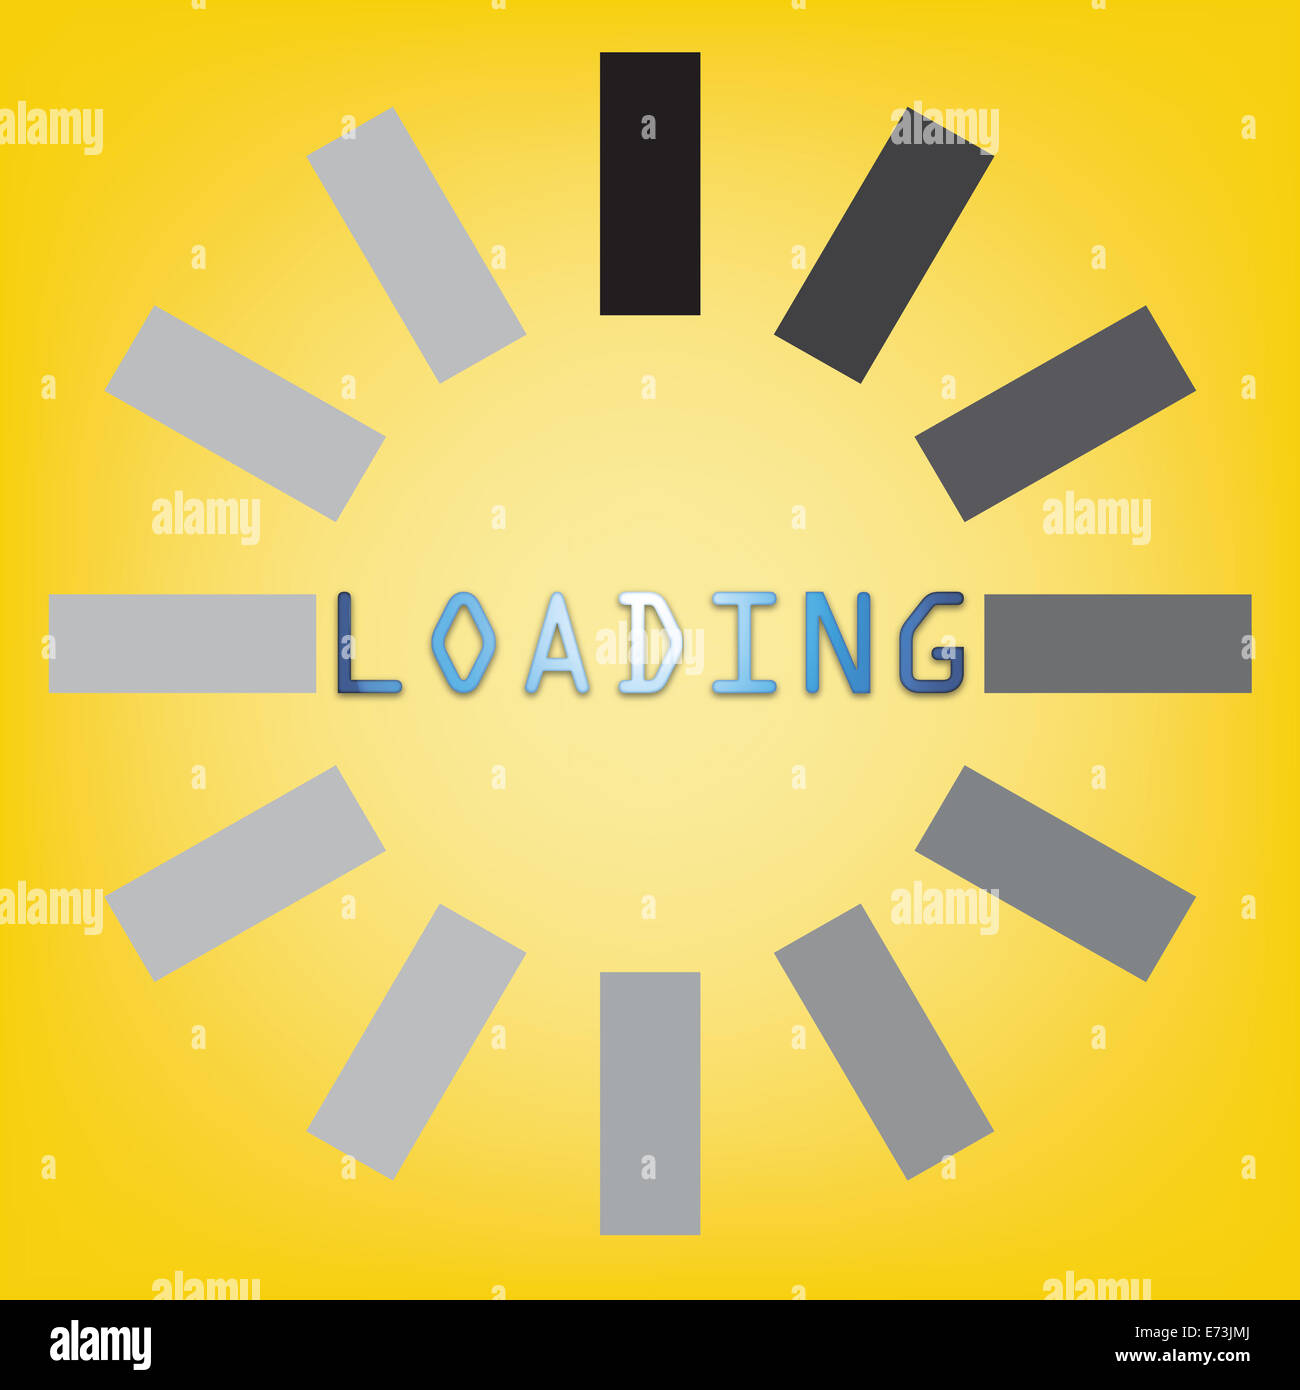 Abstract loading symbol on a yellow background stock photo abstract loading symbol on a yellow background biocorpaavc Image collections